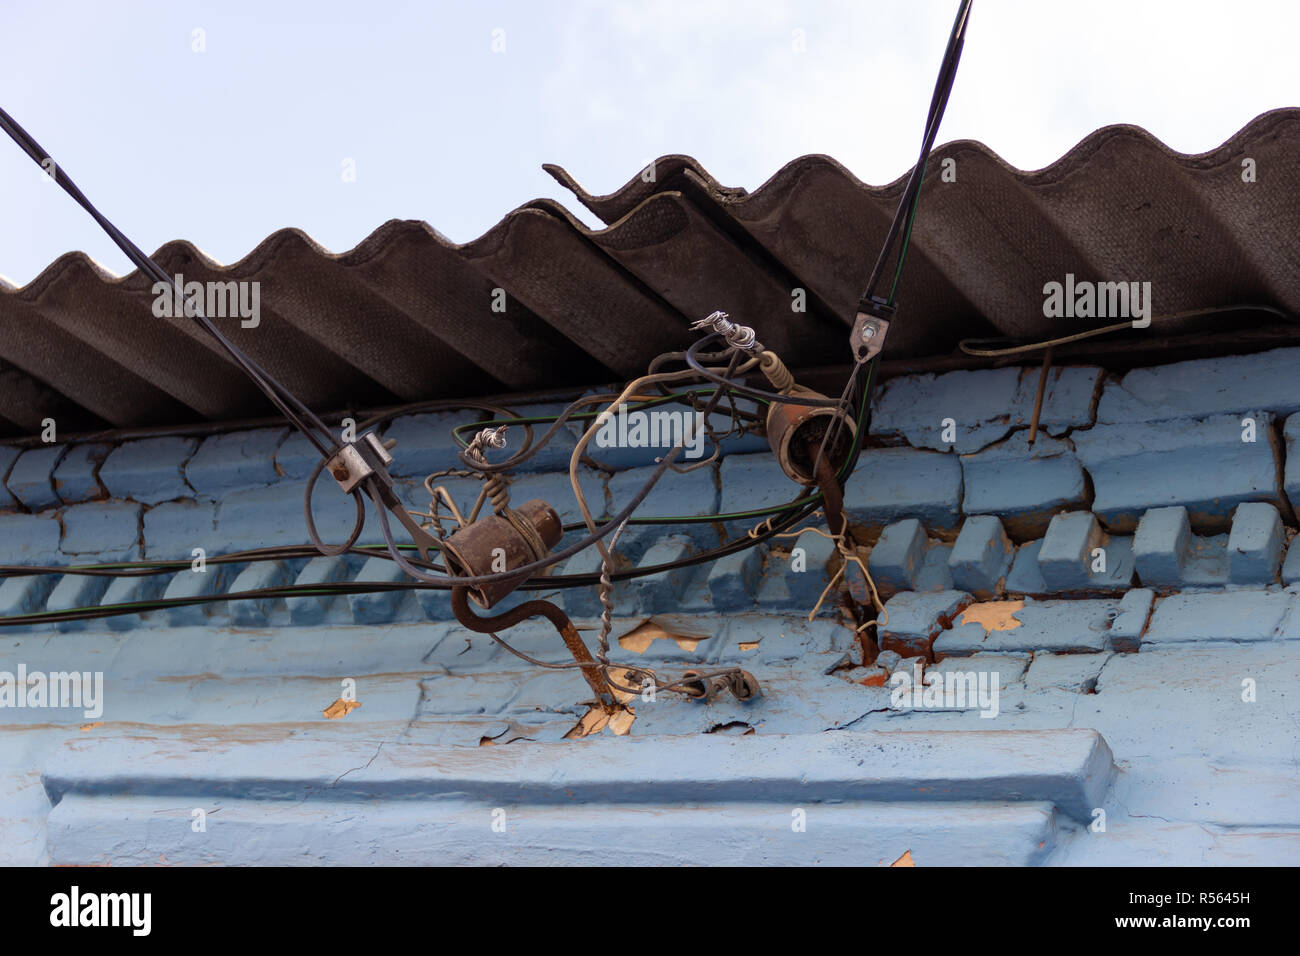 Sensational Elemental Electrical Wiring On Insulators Under The Slate Roof Of An Wiring Cloud Hisonuggs Outletorg